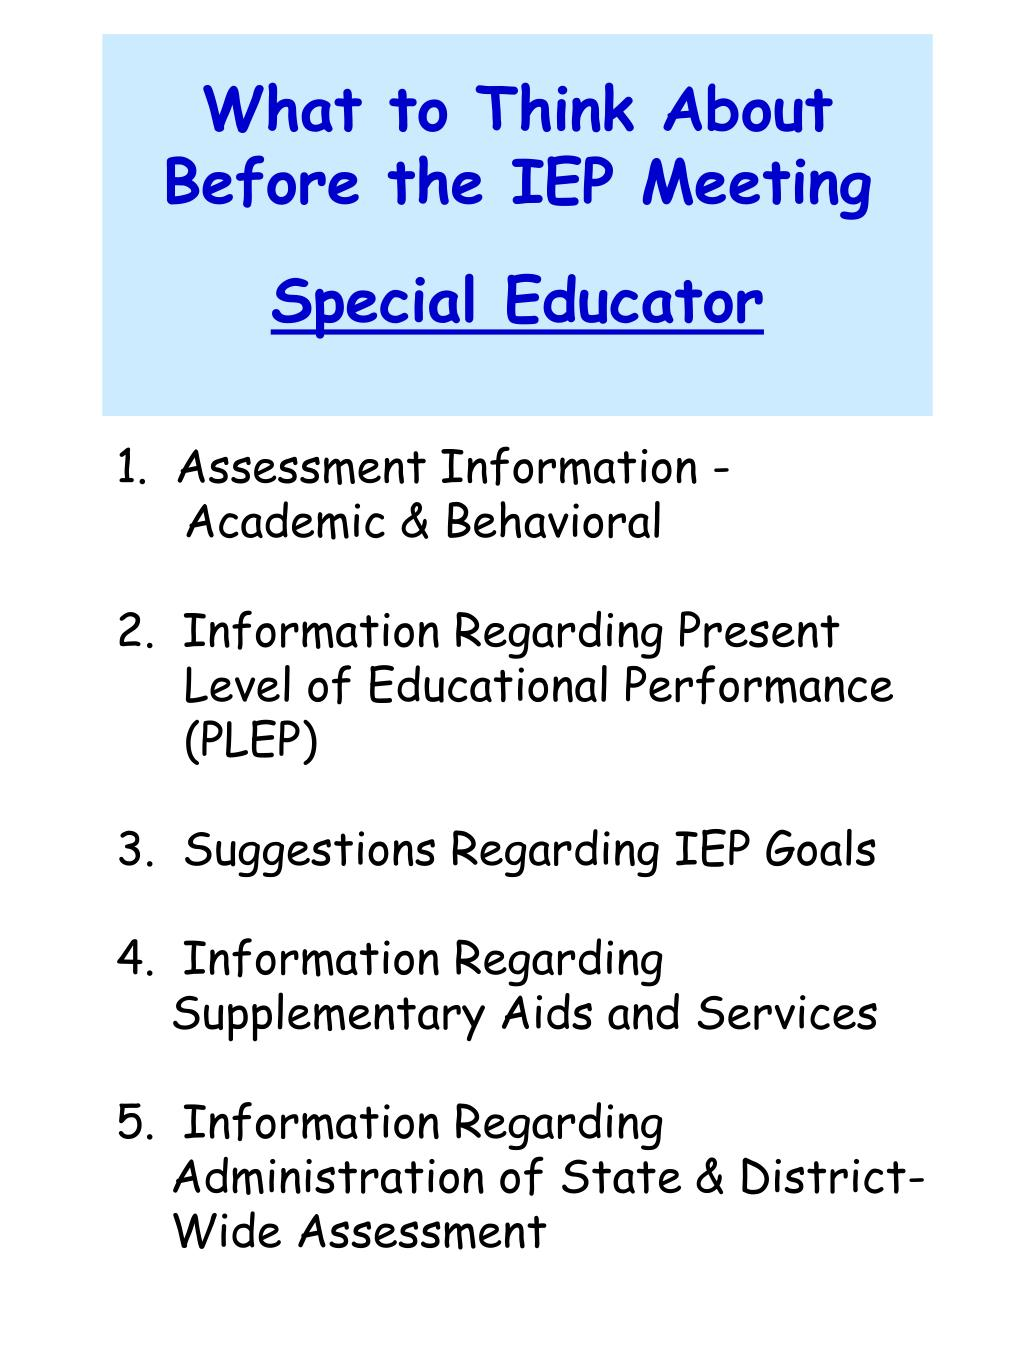 What to Think About Before the IEP Meeting